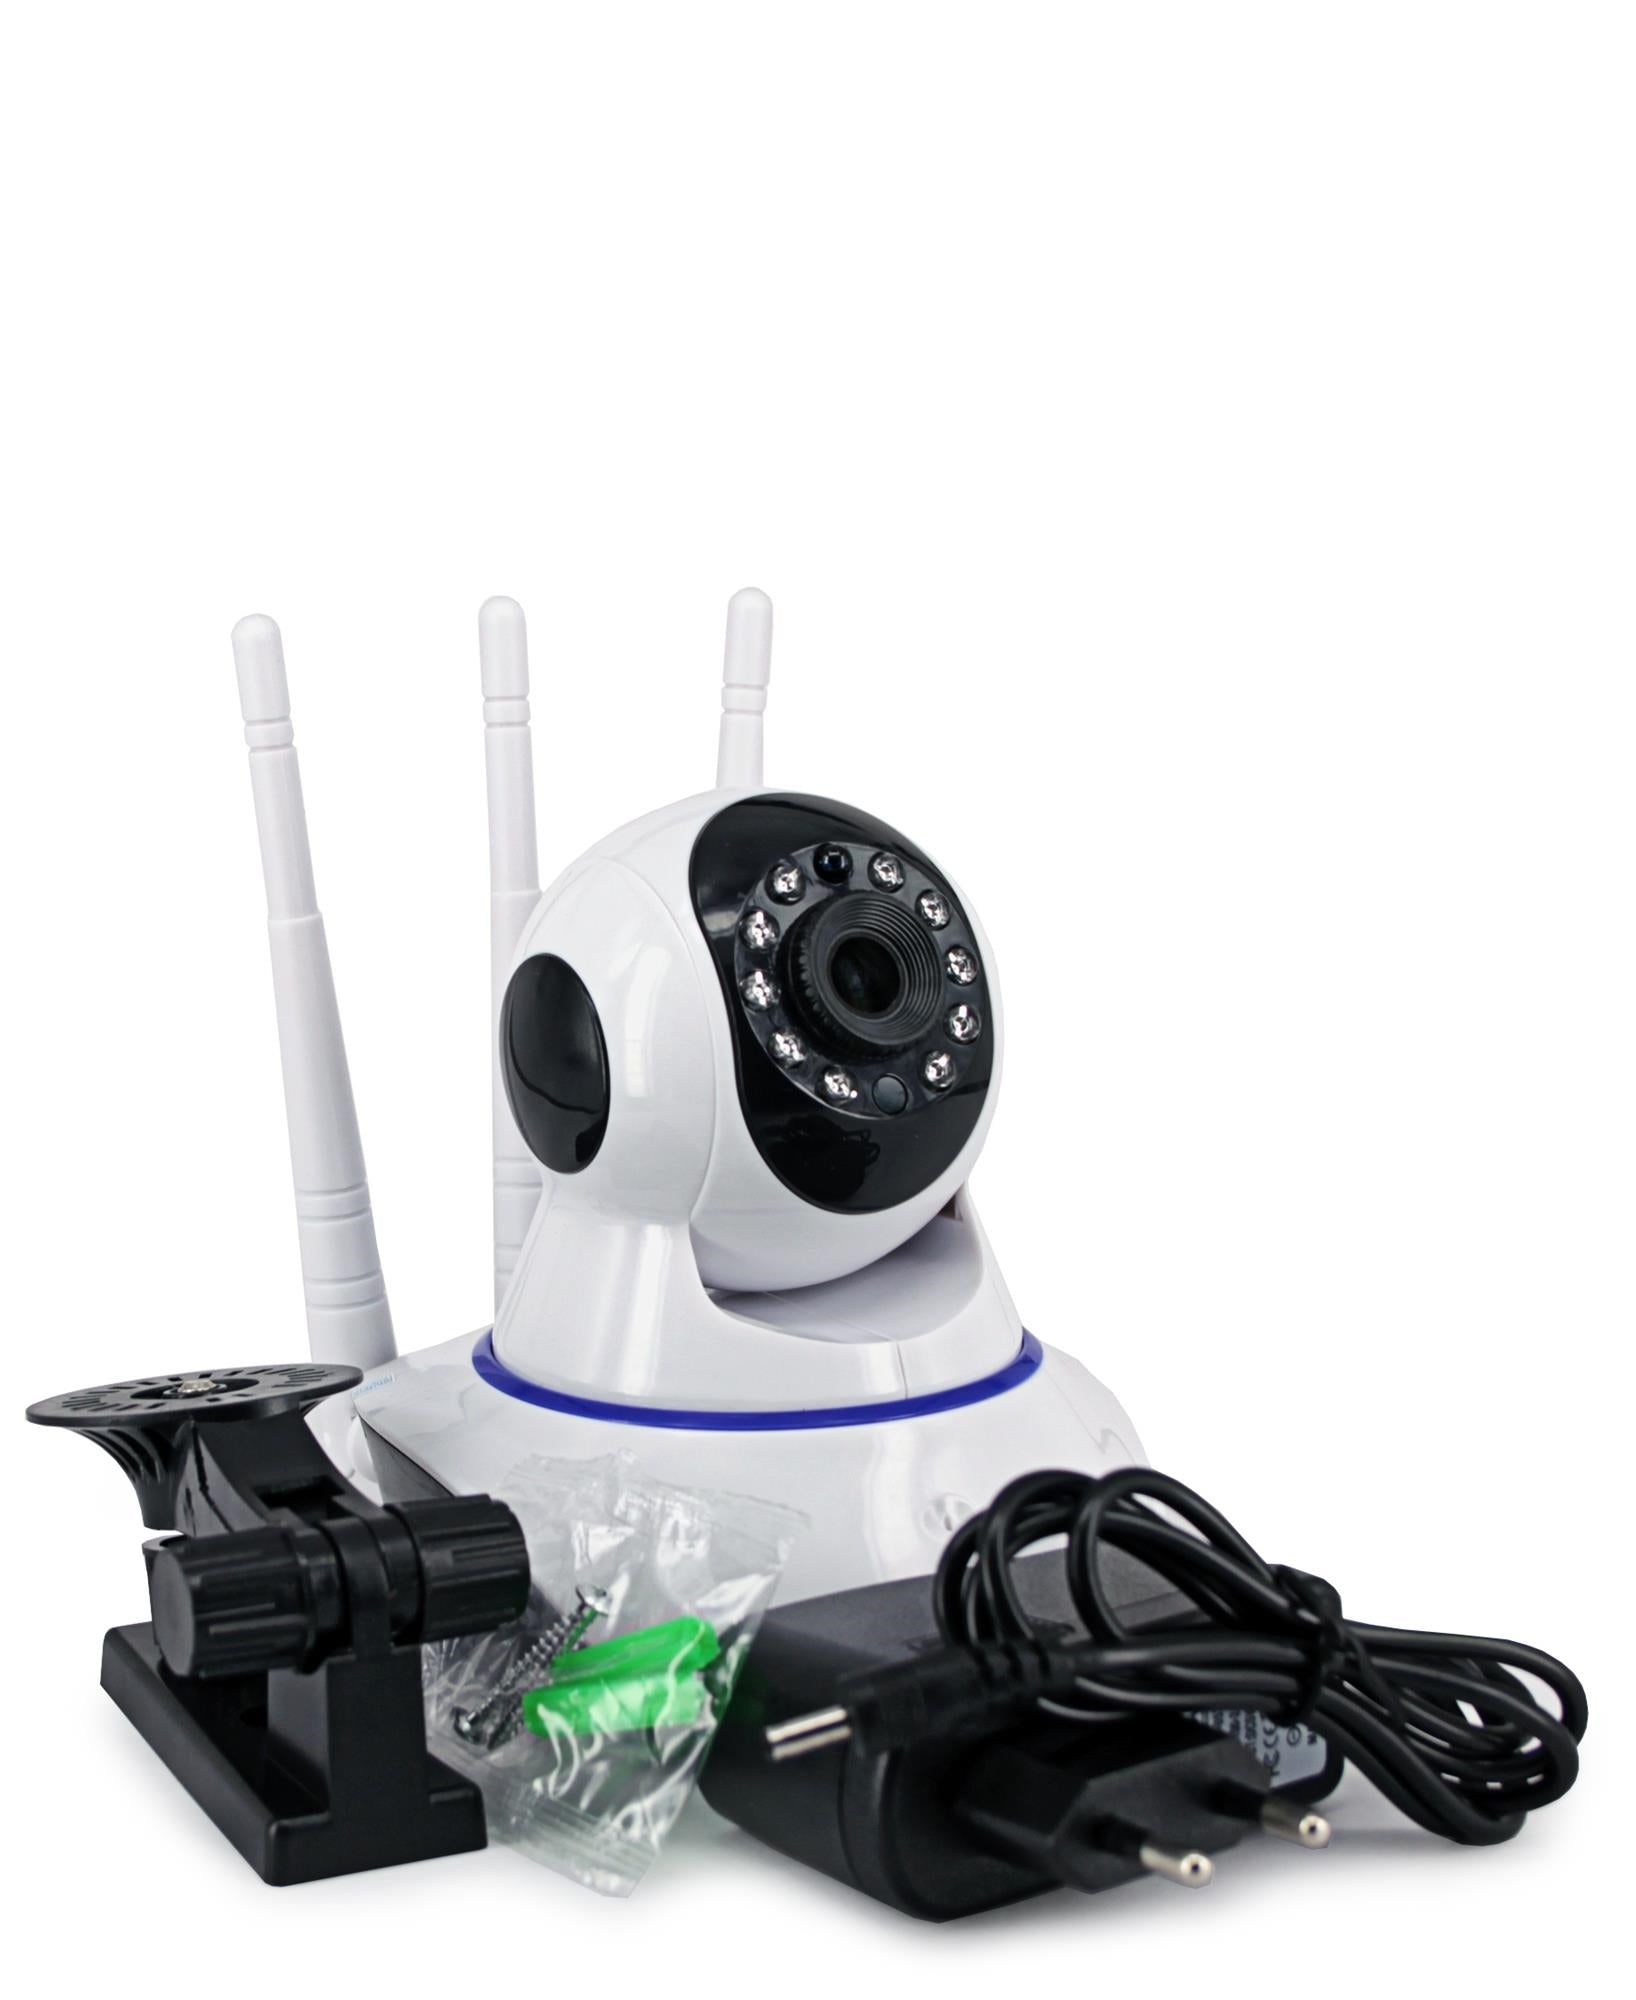 Triple Antenna 2MP Smart Wifi Camera - White